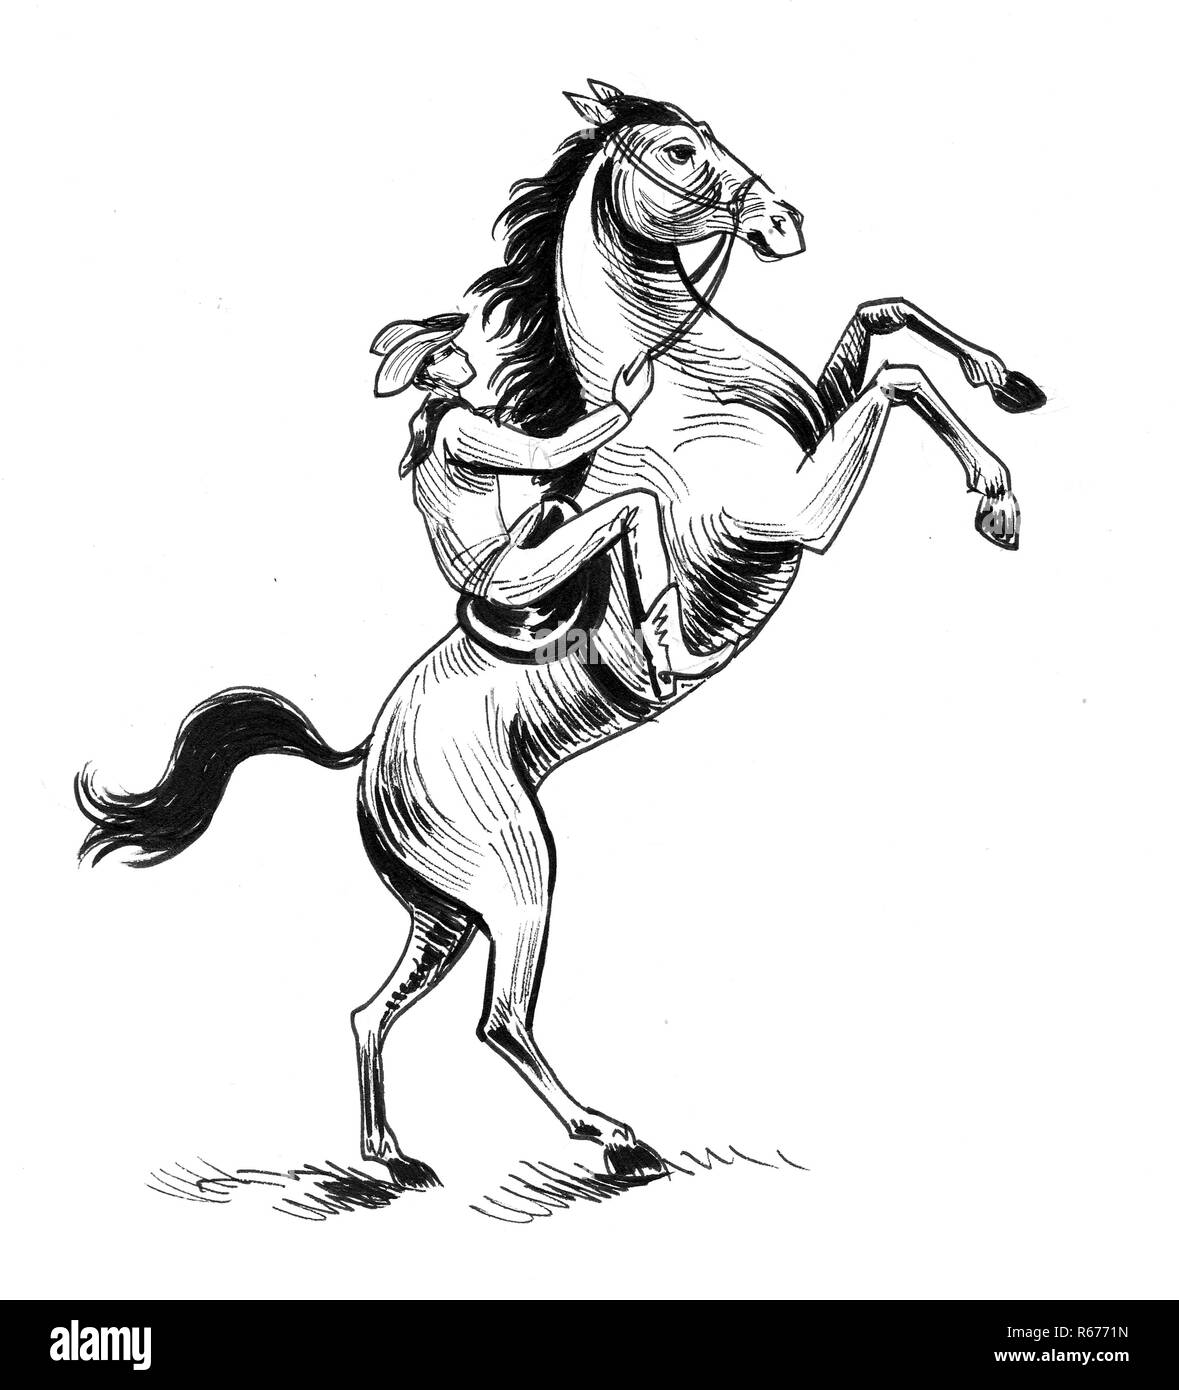 27+ Horse Riding Cartoon Black And White Background